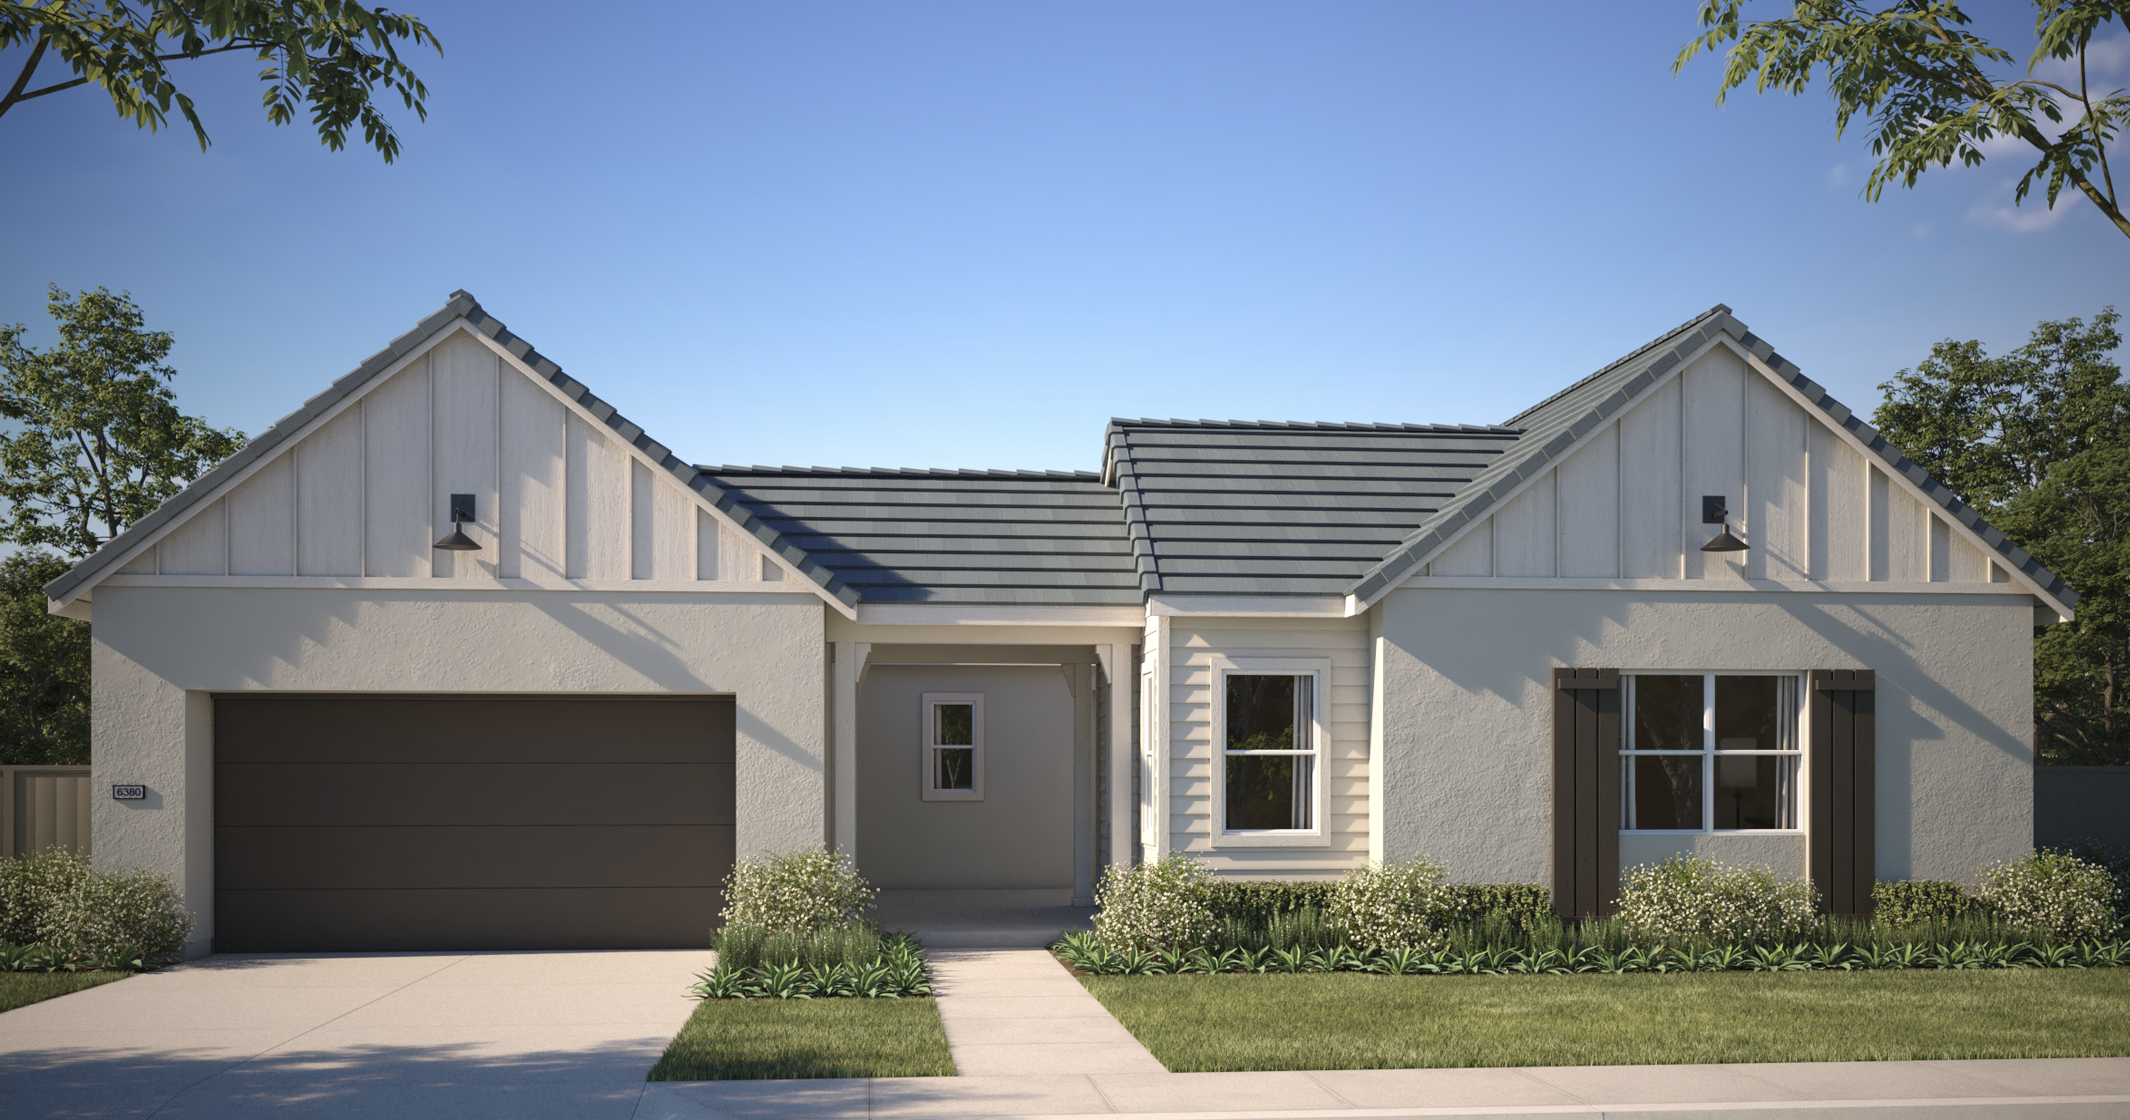 Gold Hill Exterior Rendering